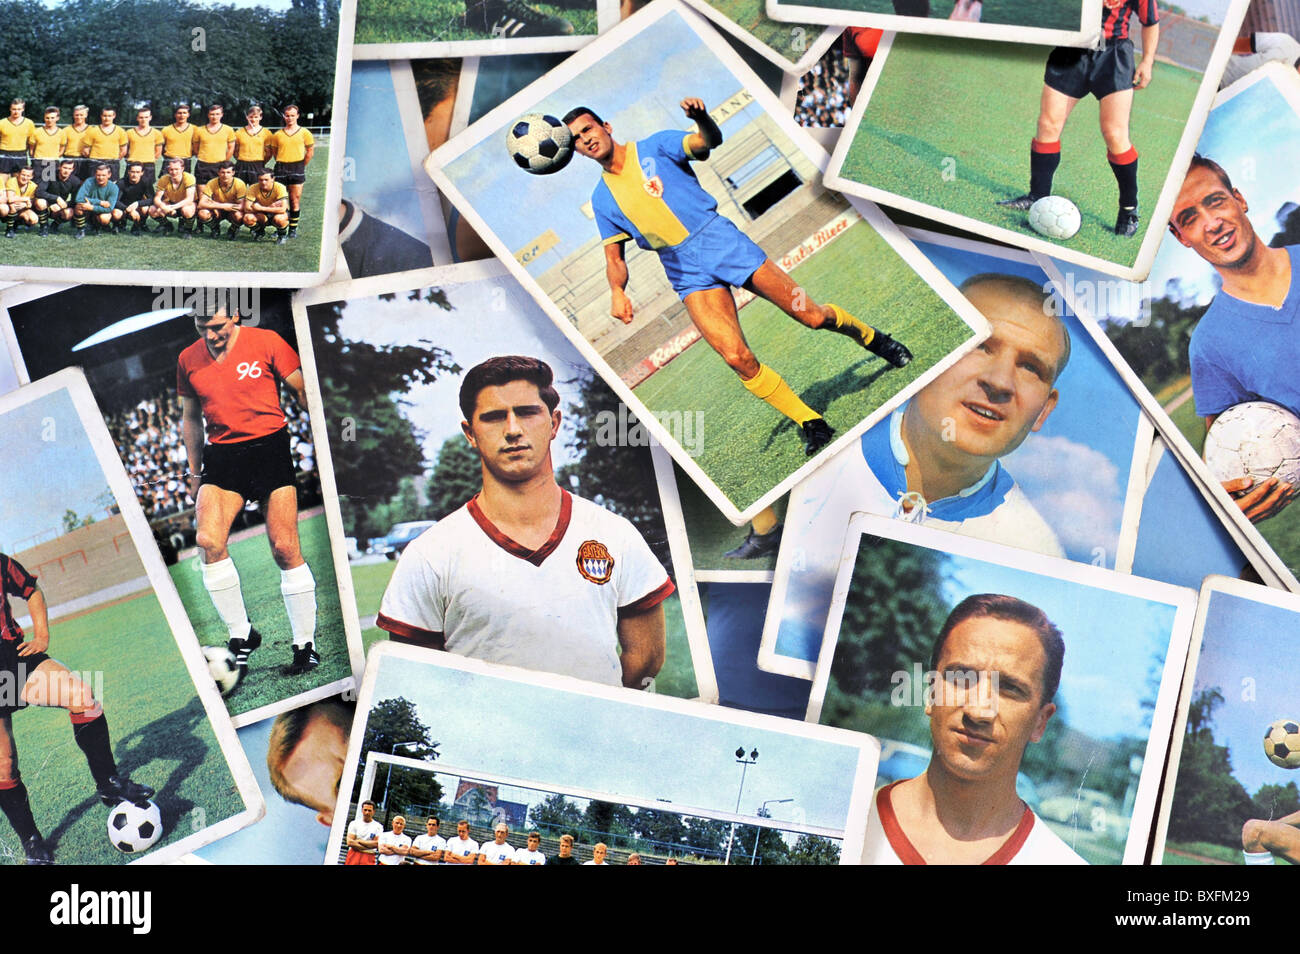 sports, soccer / football, national league, season 1965/66, Germany, 1965, 1960s, 60s, 20th century, historic, historical, - Stock Image